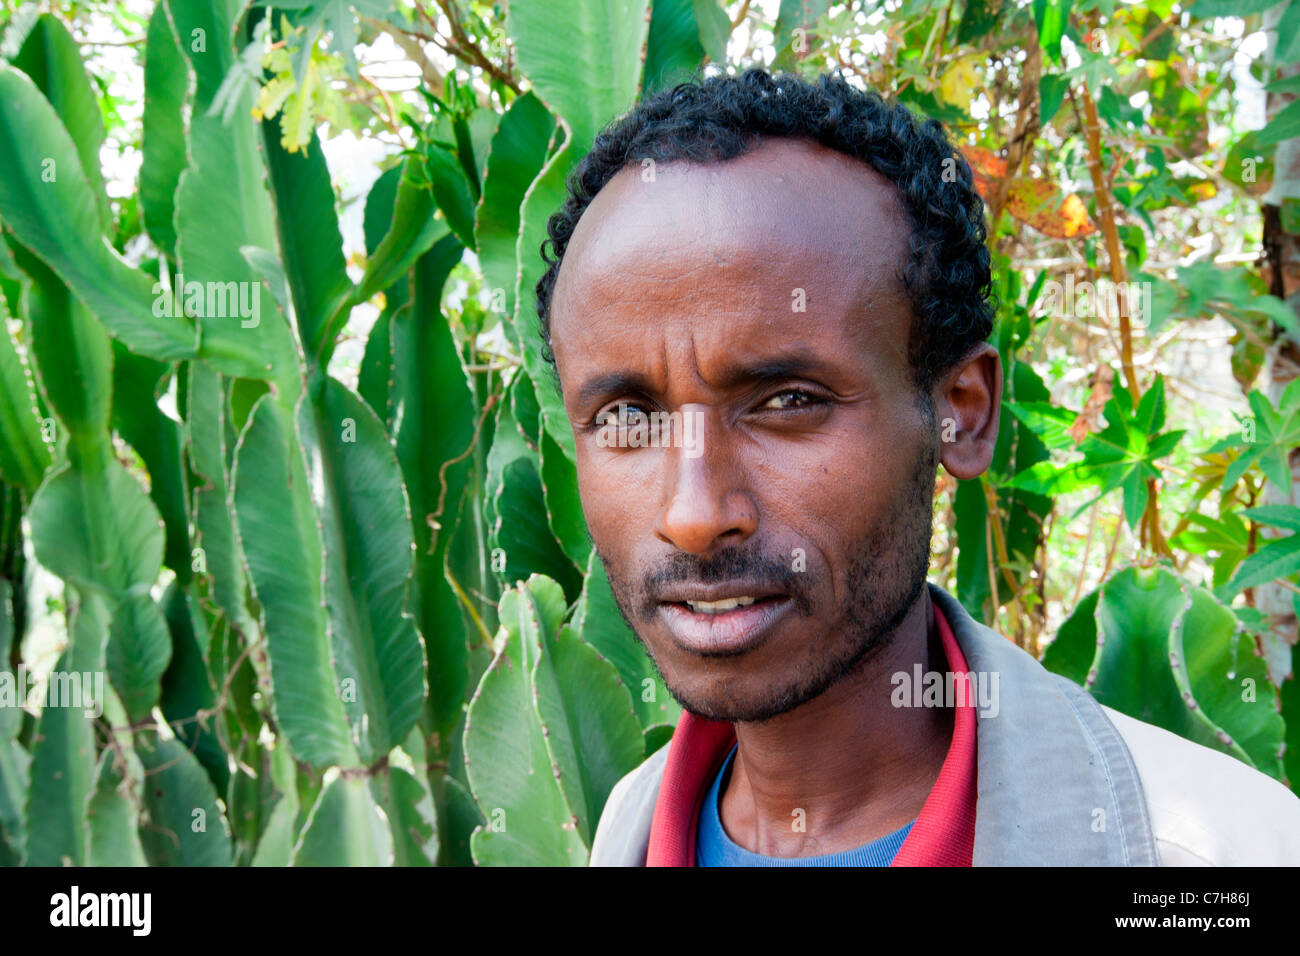 Portrait of a local farmer at Sulula market near Dessie in Northern Ethiopia, Africa. - Stock Image